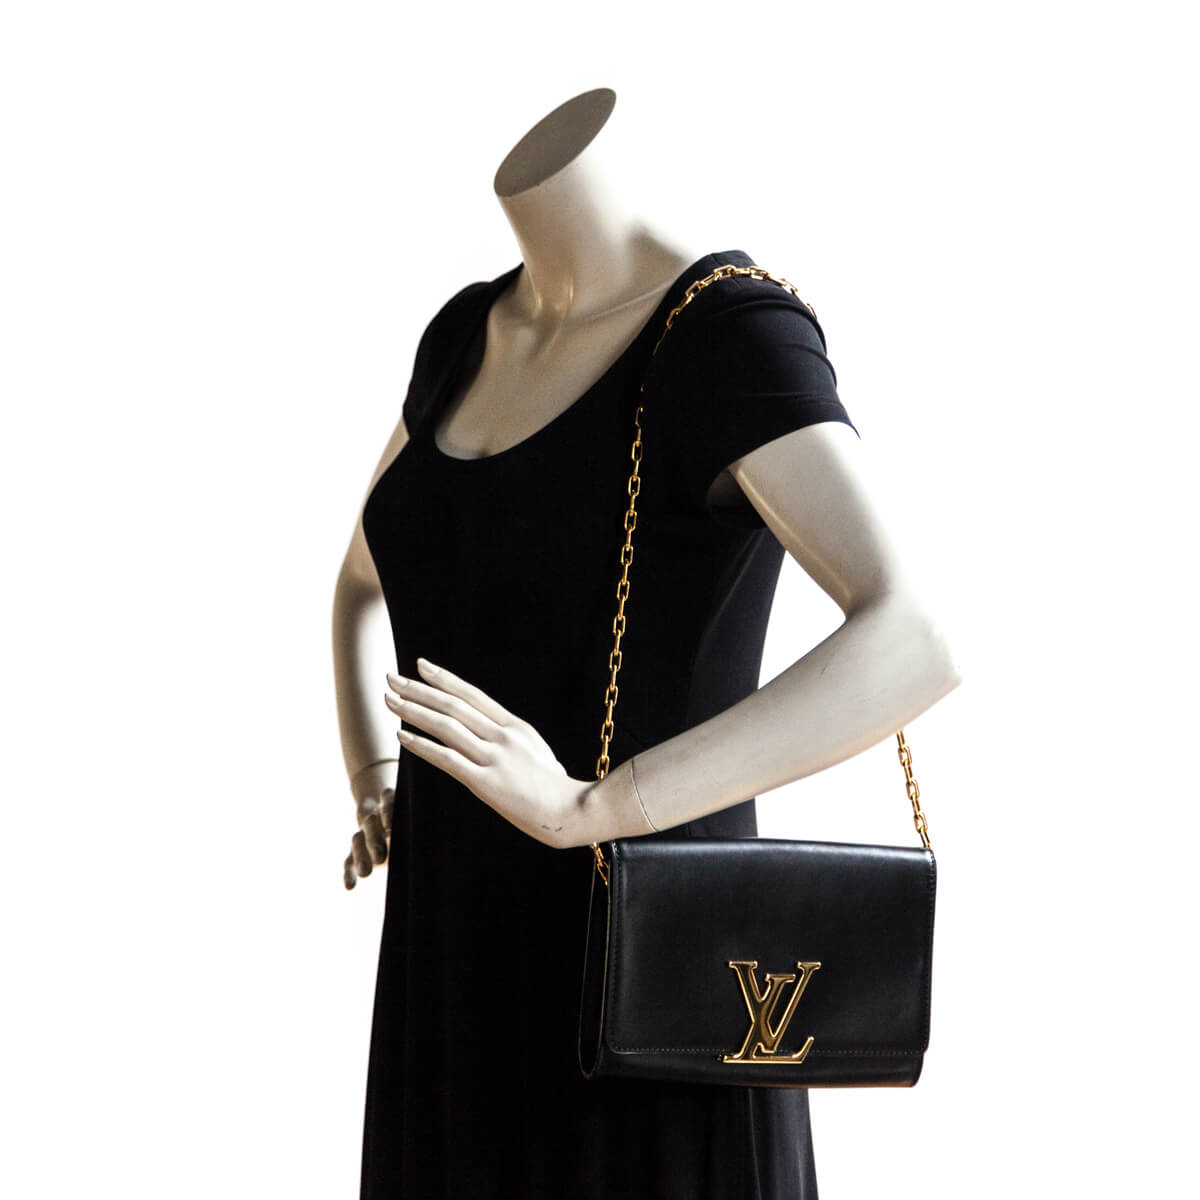 a191dfd3728 ... Louis Vuitton Black Calfskin Chain Louise GM - LOVE that BAG - Preowned  Authentic Designer Handbags